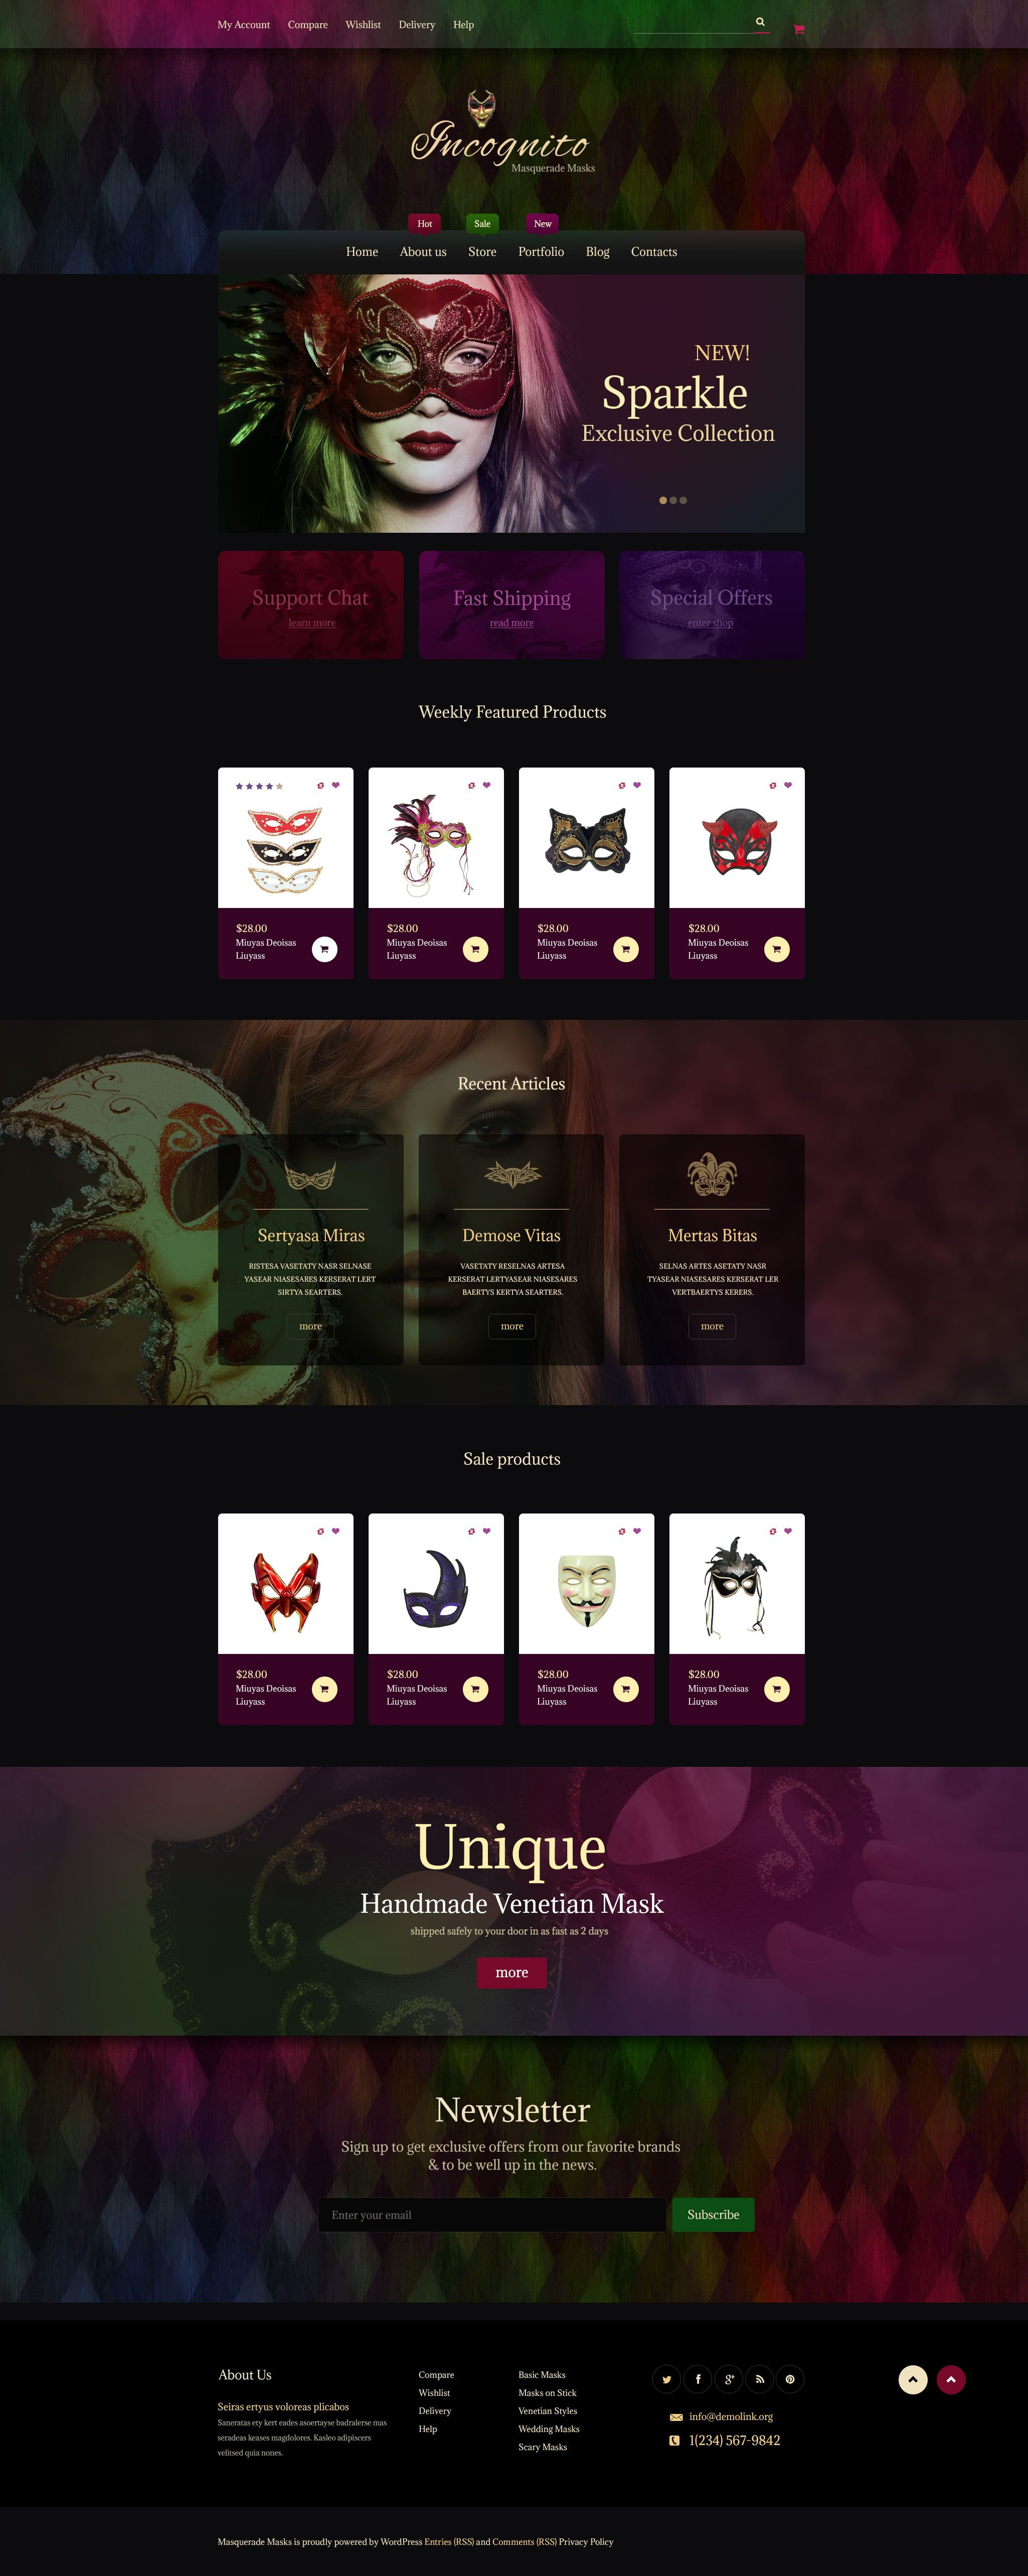 The Masks Masquerade Store WooCommerce Design 53767, one of the best WooCommerce themes of its kind (most popular, online casino), also known as Masks masquerade store WooCommerce template, shopping cart WooCommerce template, services WooCommerce template, prices WooCommerce template, holidays WooCommerce template, mask WooCommerce template, wigs WooCommerce template, hair WooCommerce template, footwear WooCommerce template, costumes and related with Masks masquerade store, shopping cart, services, prices, holidays, mask, wigs, hair, footwear, costumes, etc.